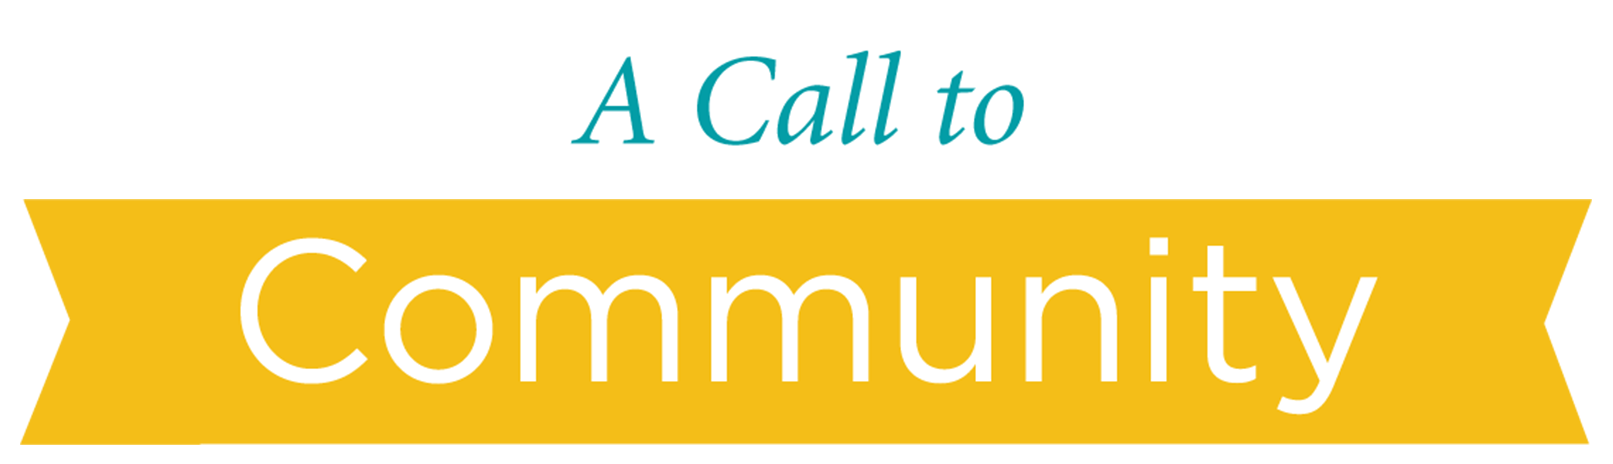 A Call to Community